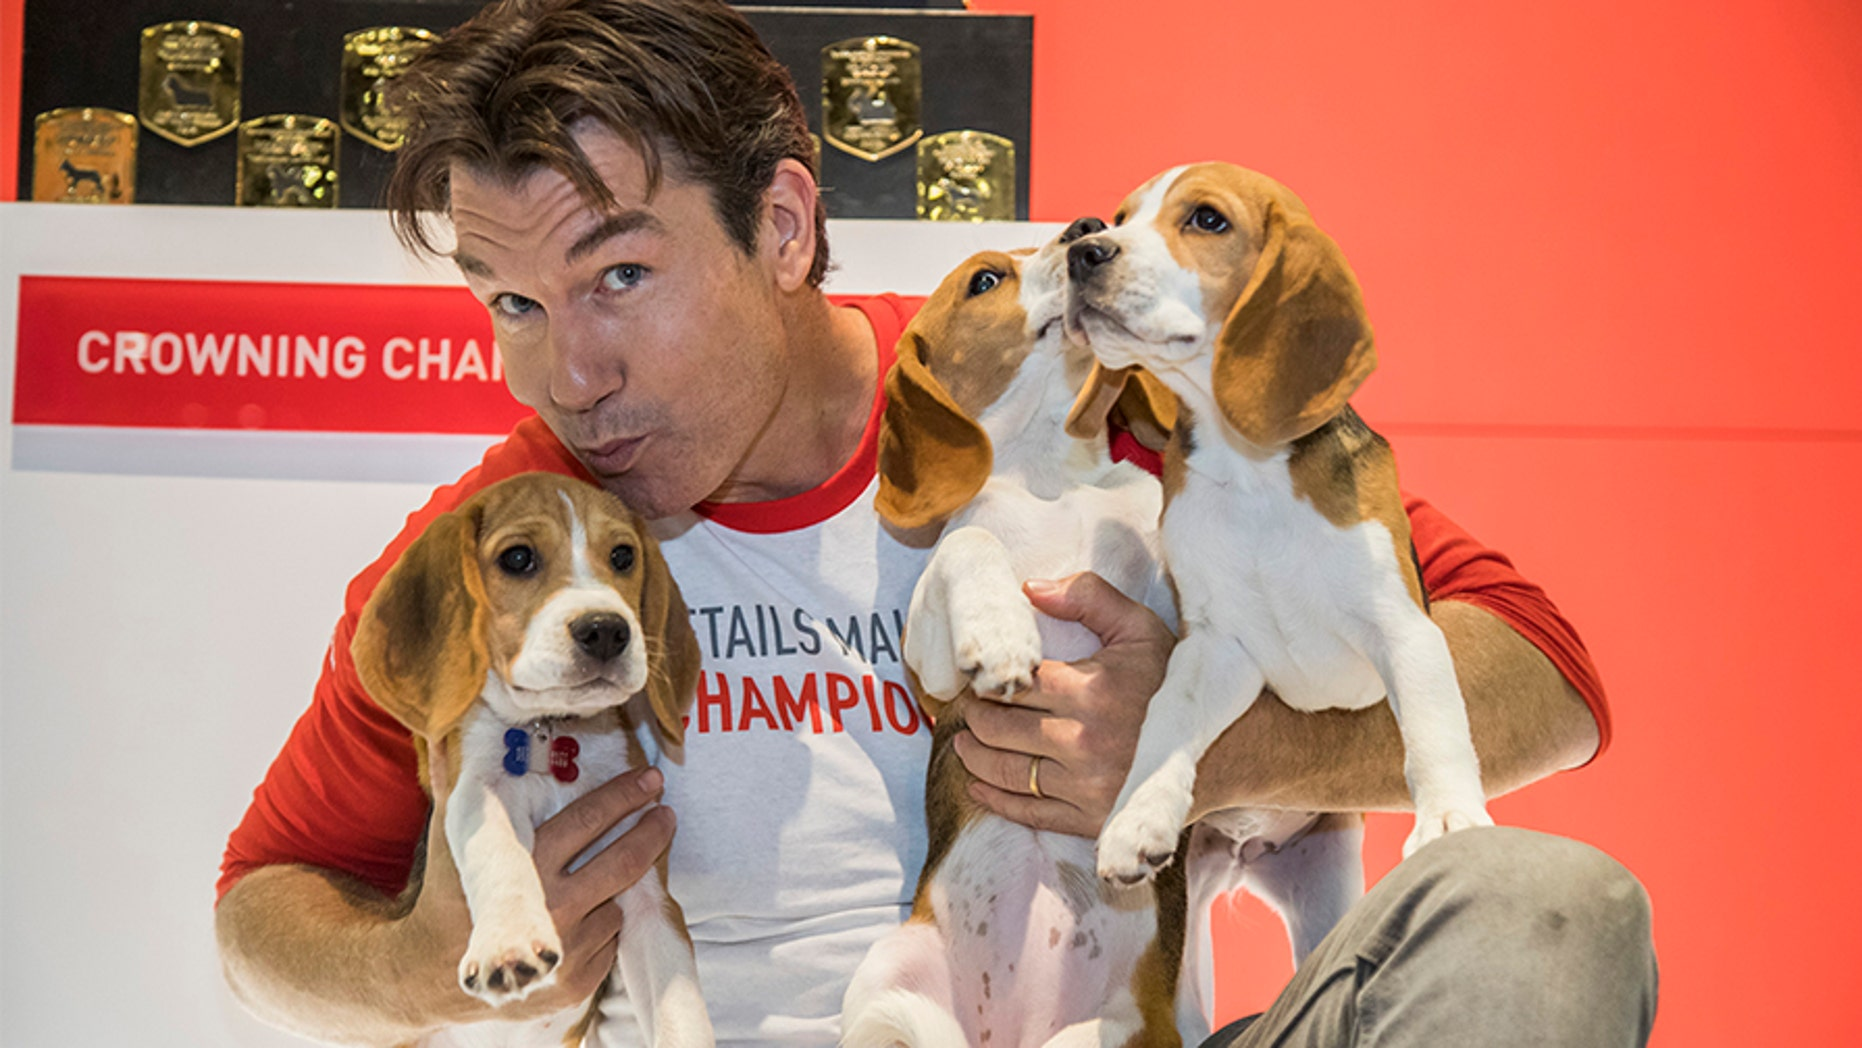 Jerry O'Connell serves as this year's celebrity host for the AKC National Championship Presented by Royal Canin, premiering on Animal Planet on New Year's Day.